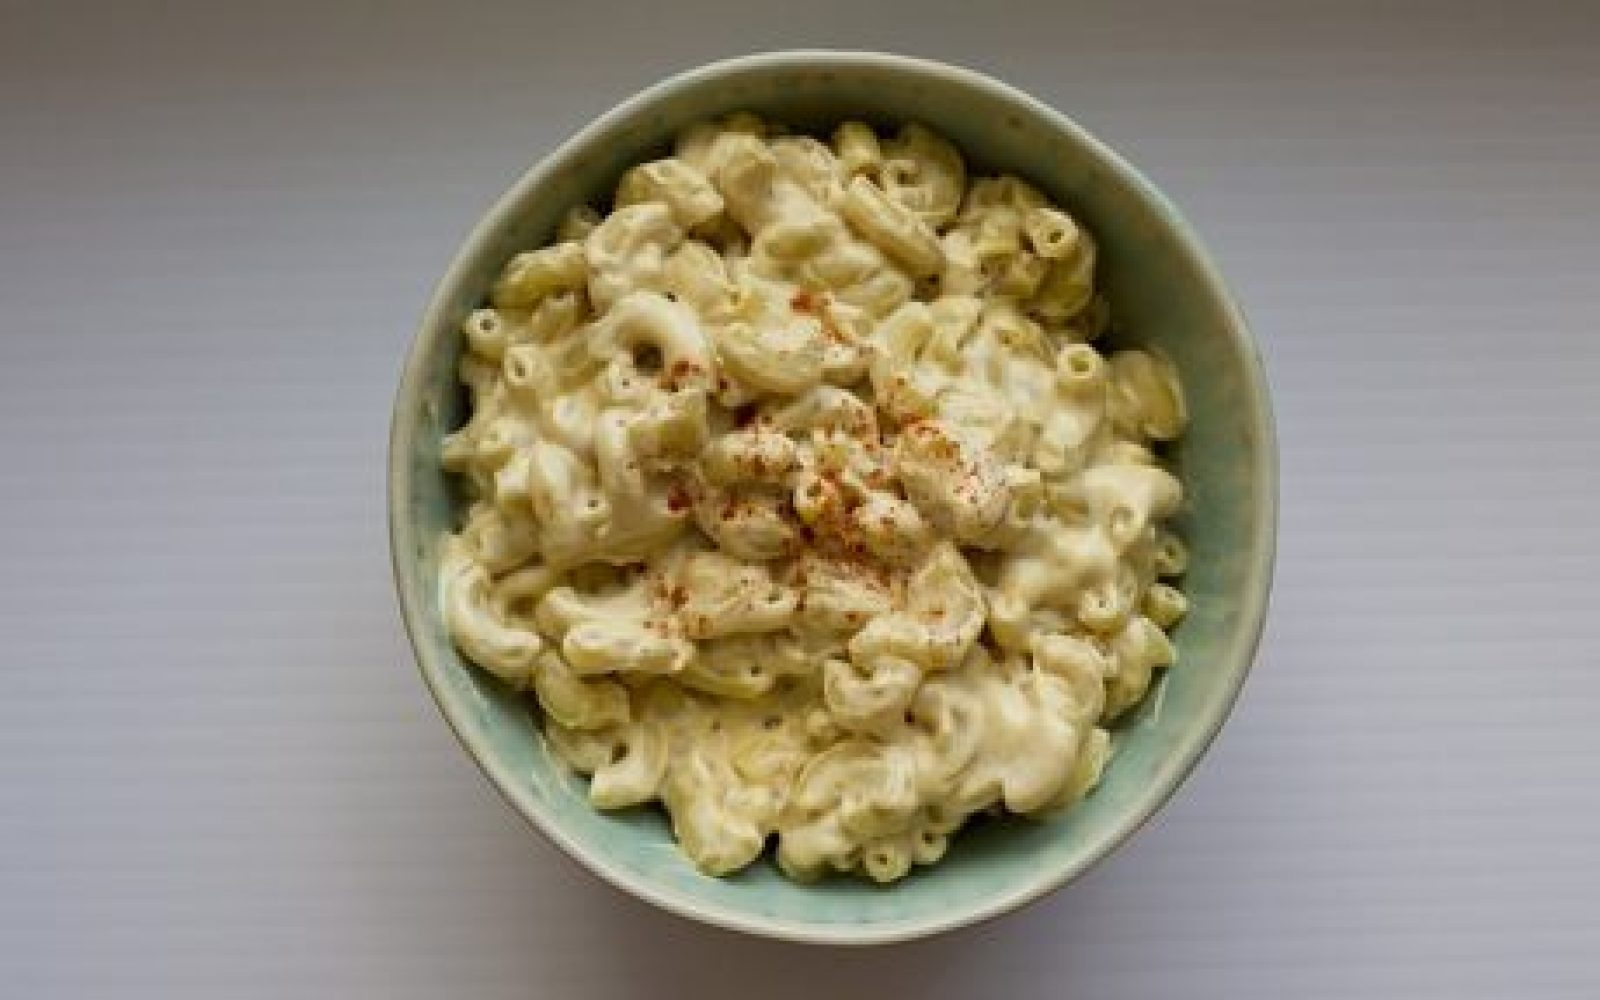 Vegan Smoky Cashew Mac and Cheese